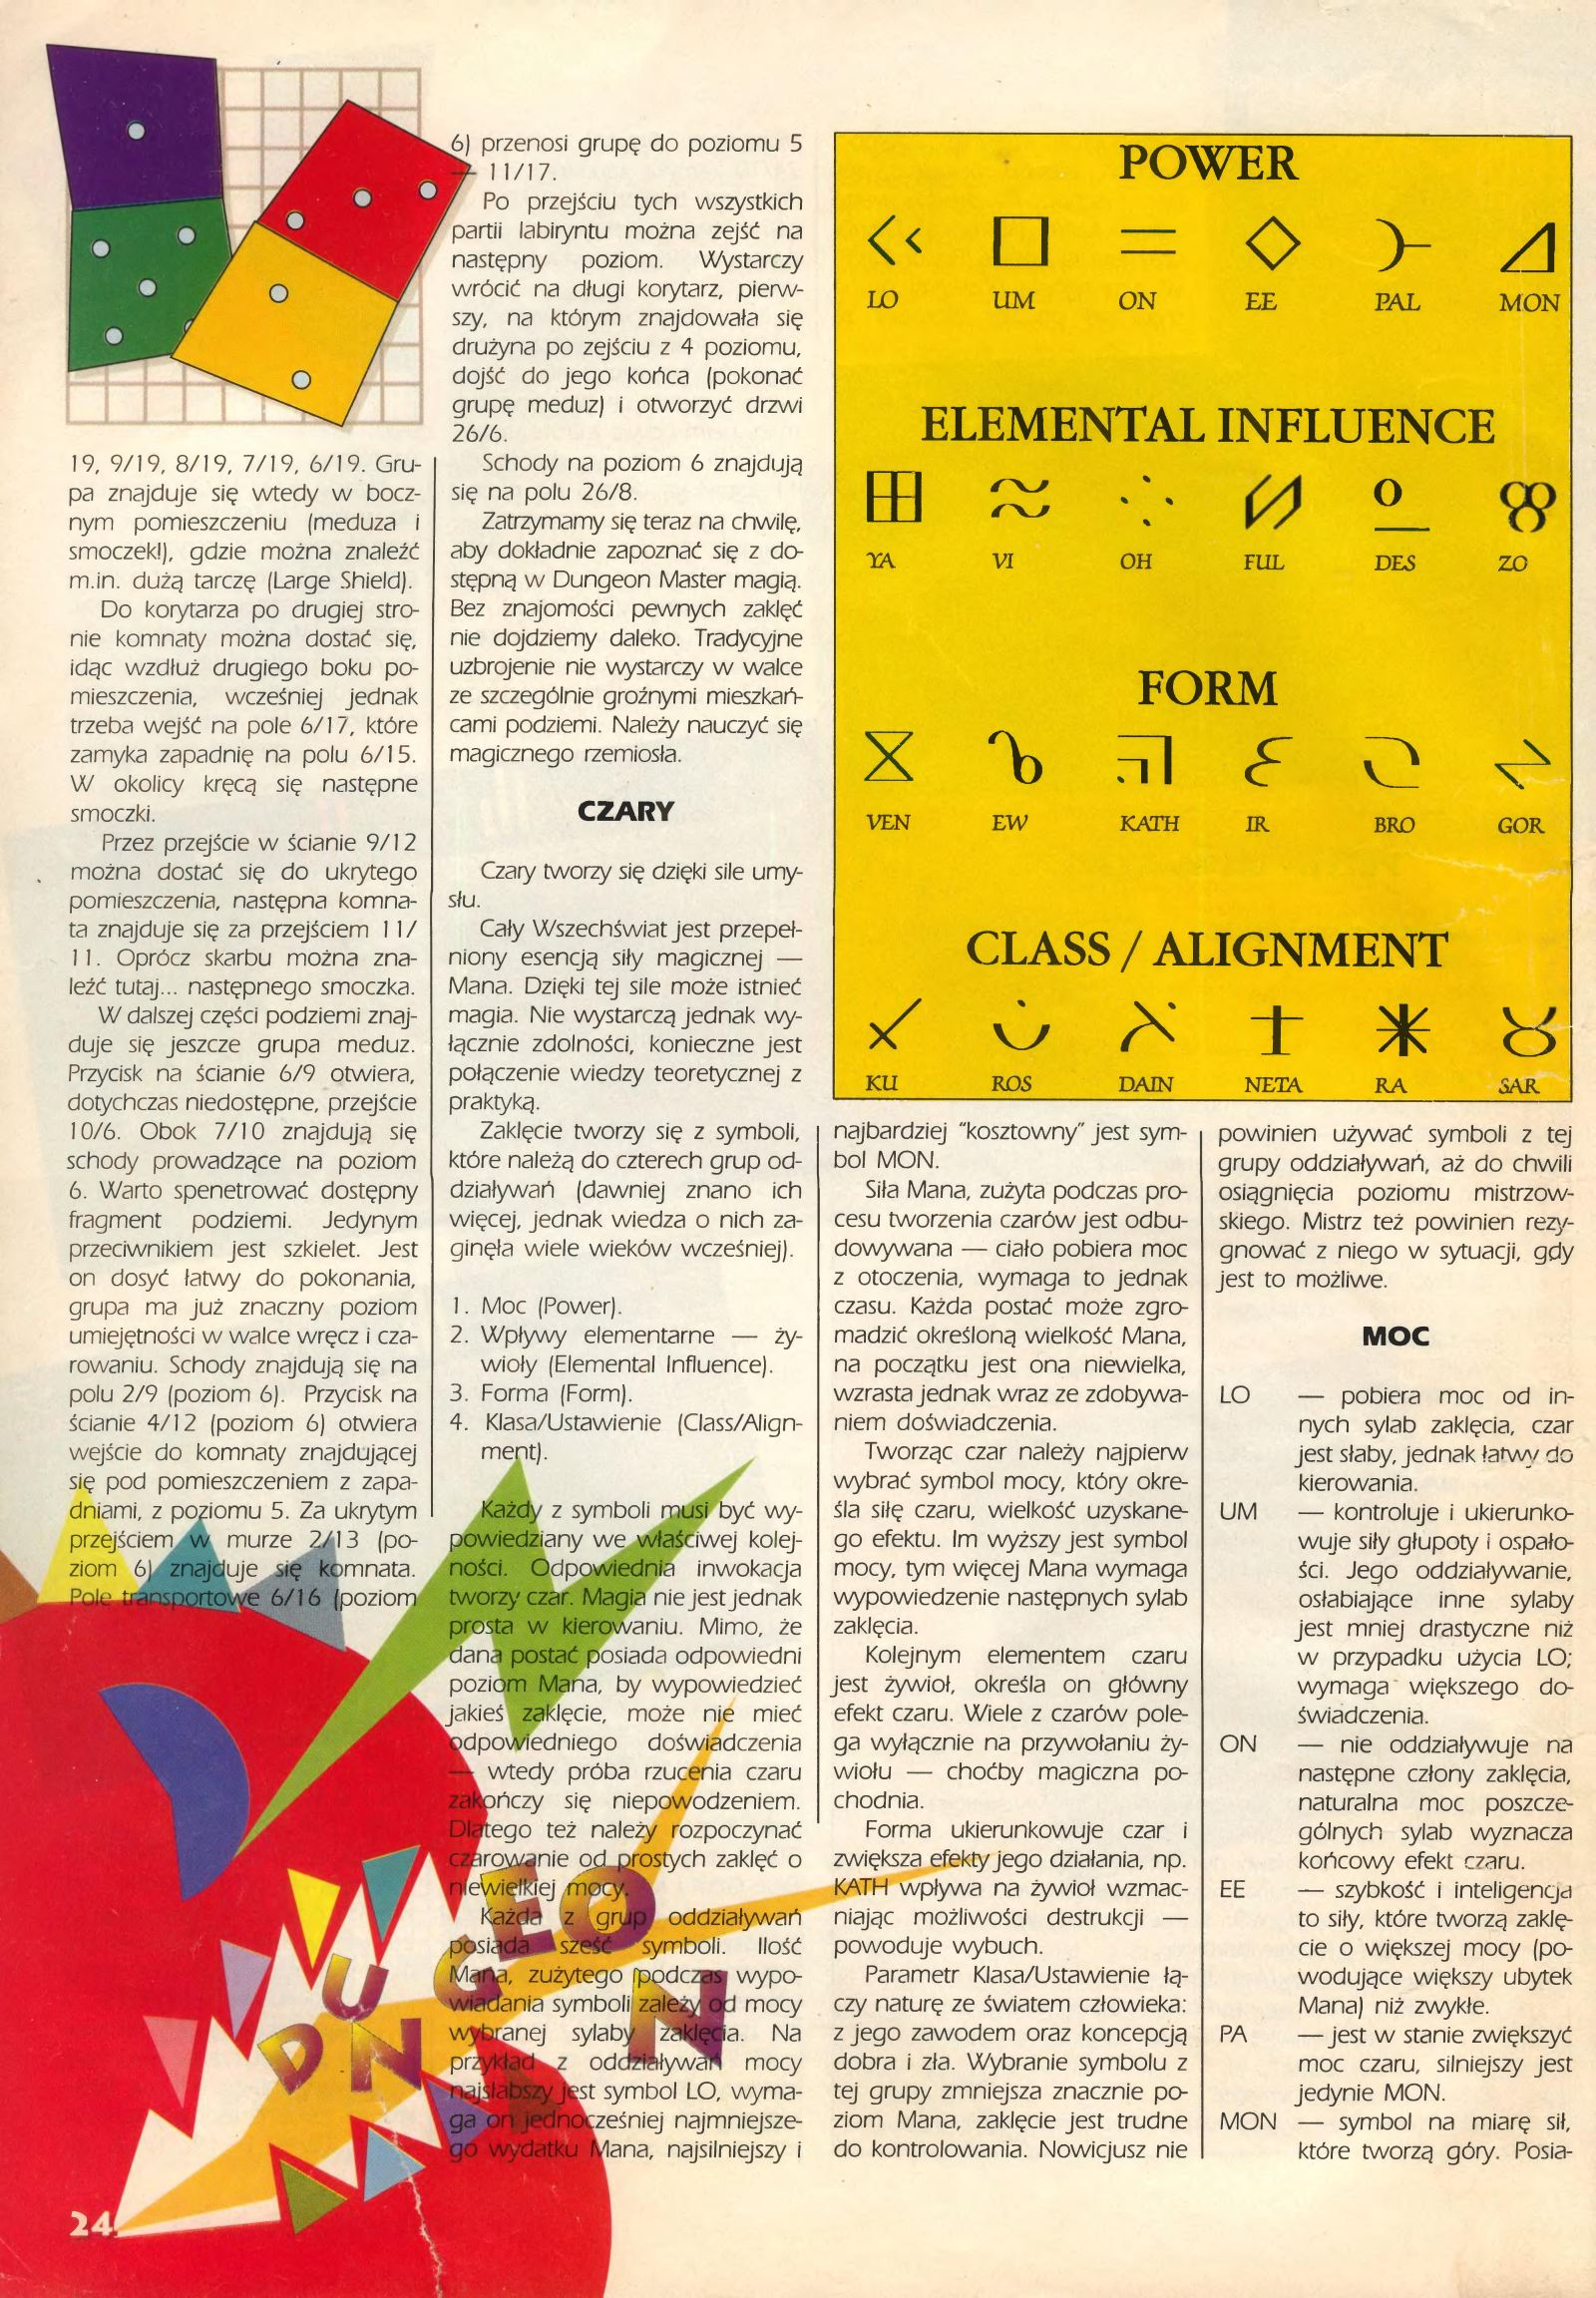 Dungeon Master Guide published in Polish magazine 'Gambler', February 1994, Page 24